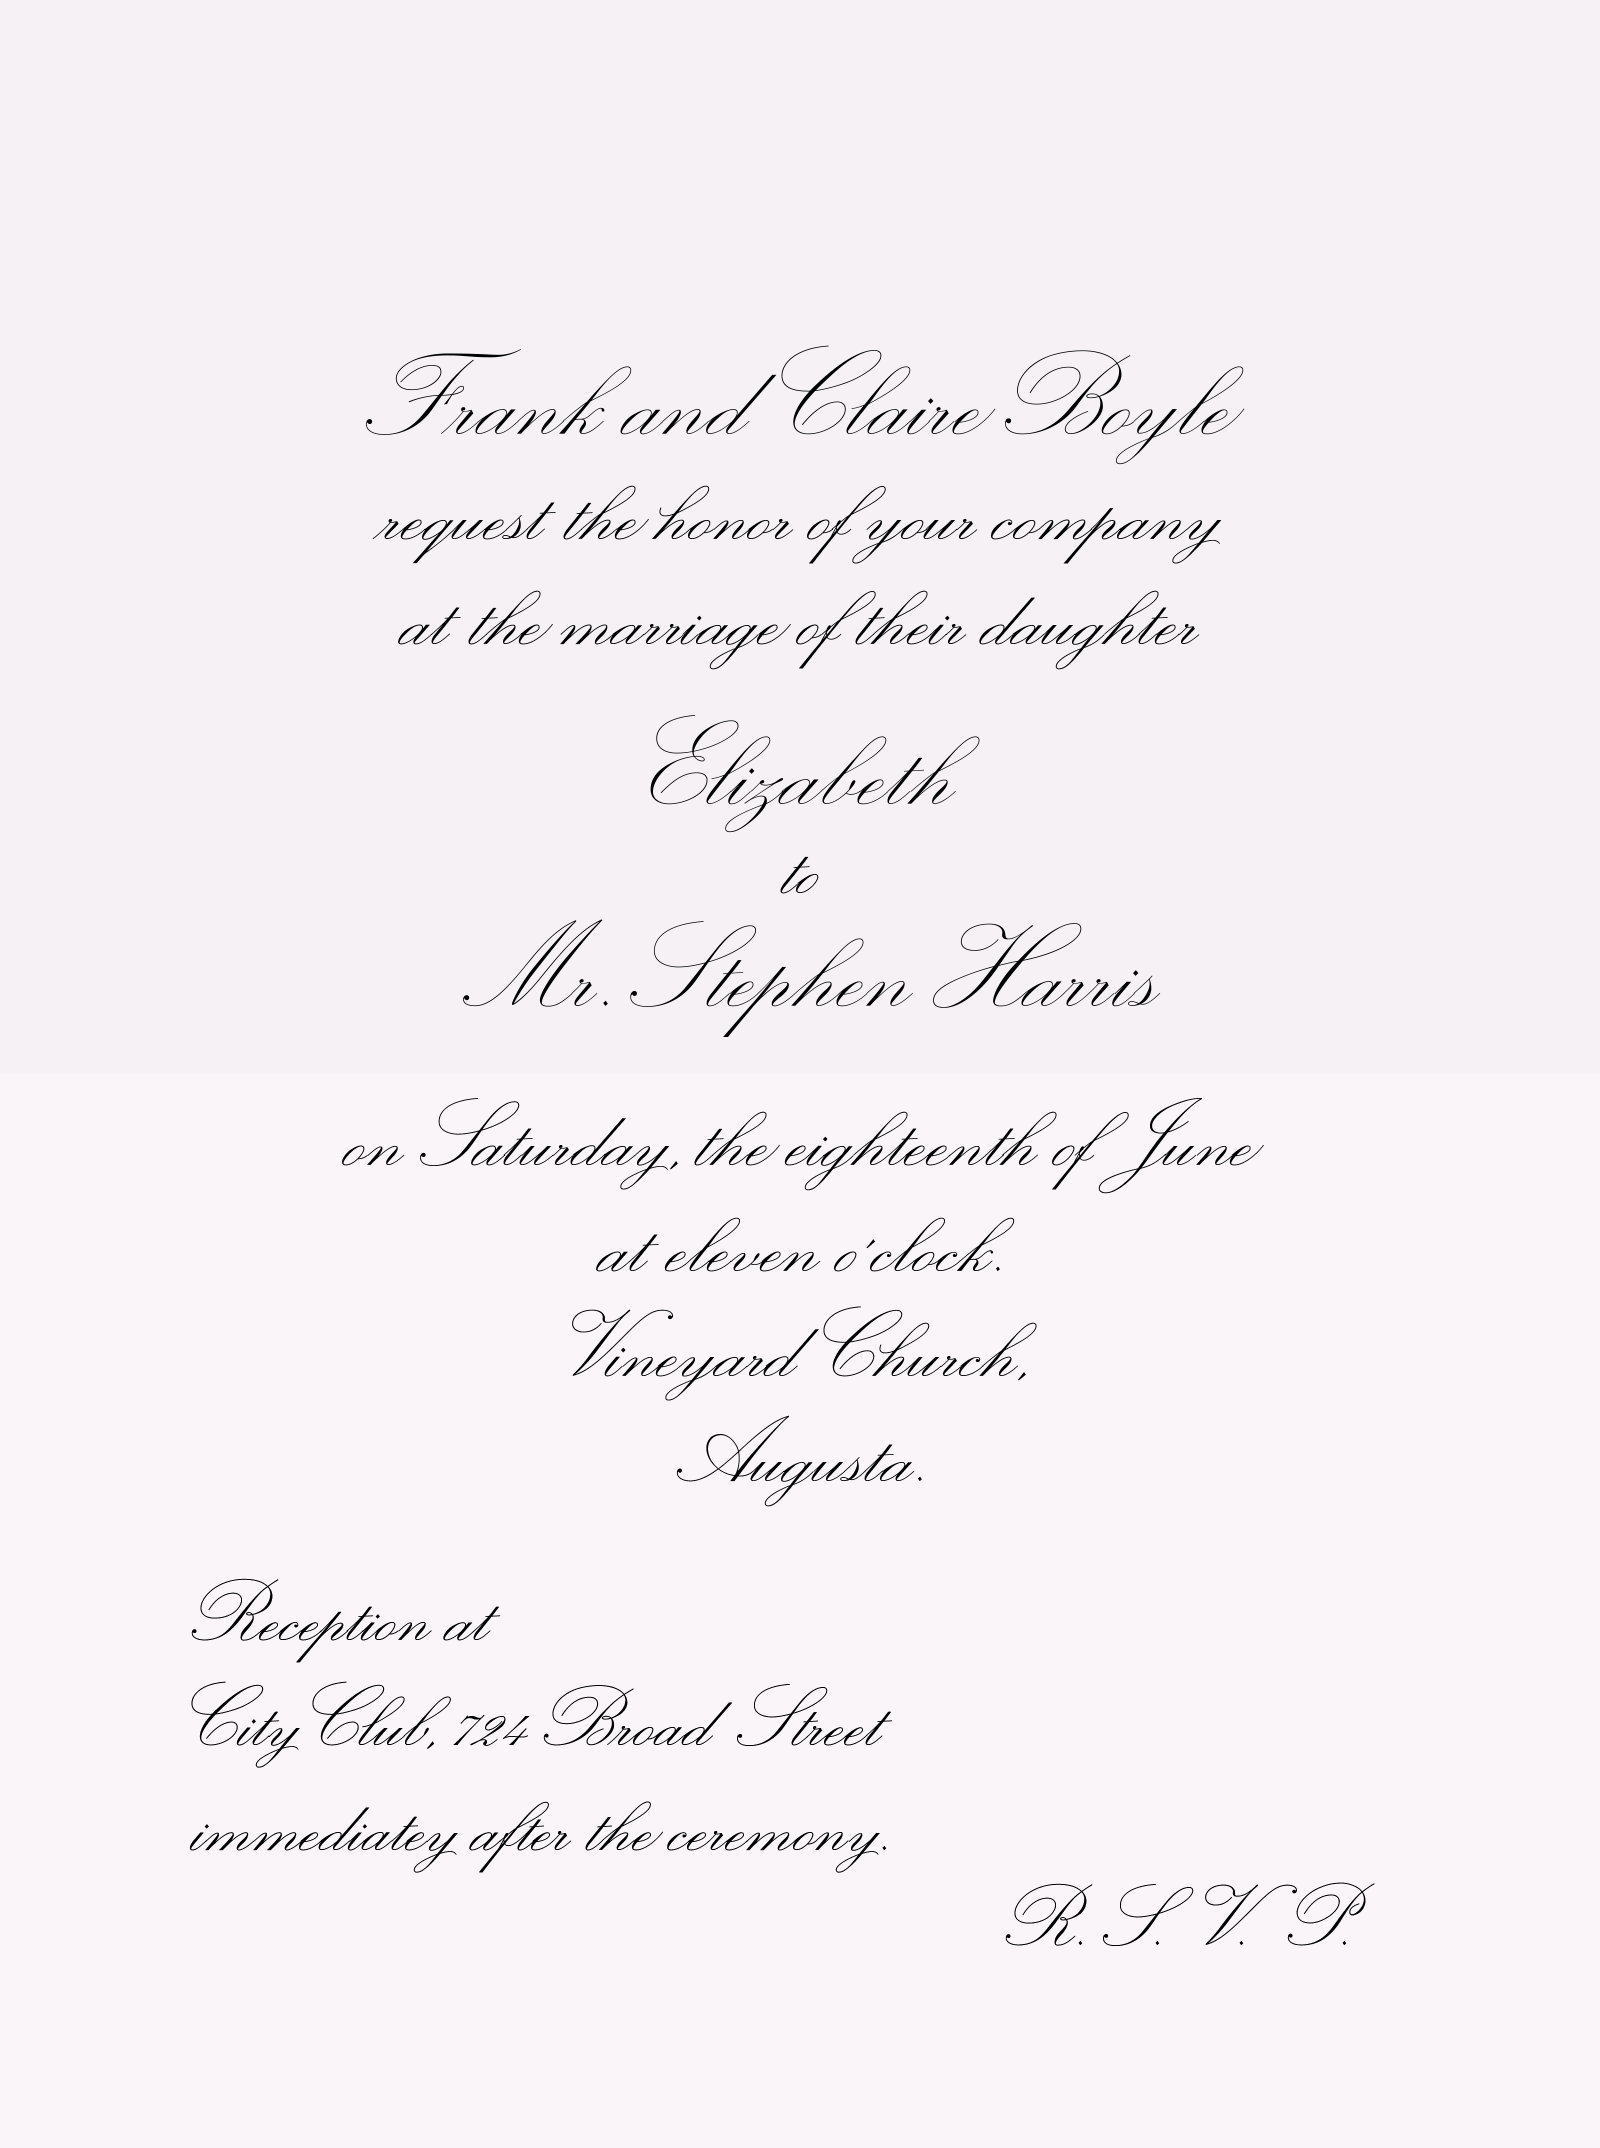 The script face used in the above samples is Novia, which is also featured in Alexander Roth's Script Fonts for Wedding Invitations fontlist, ...